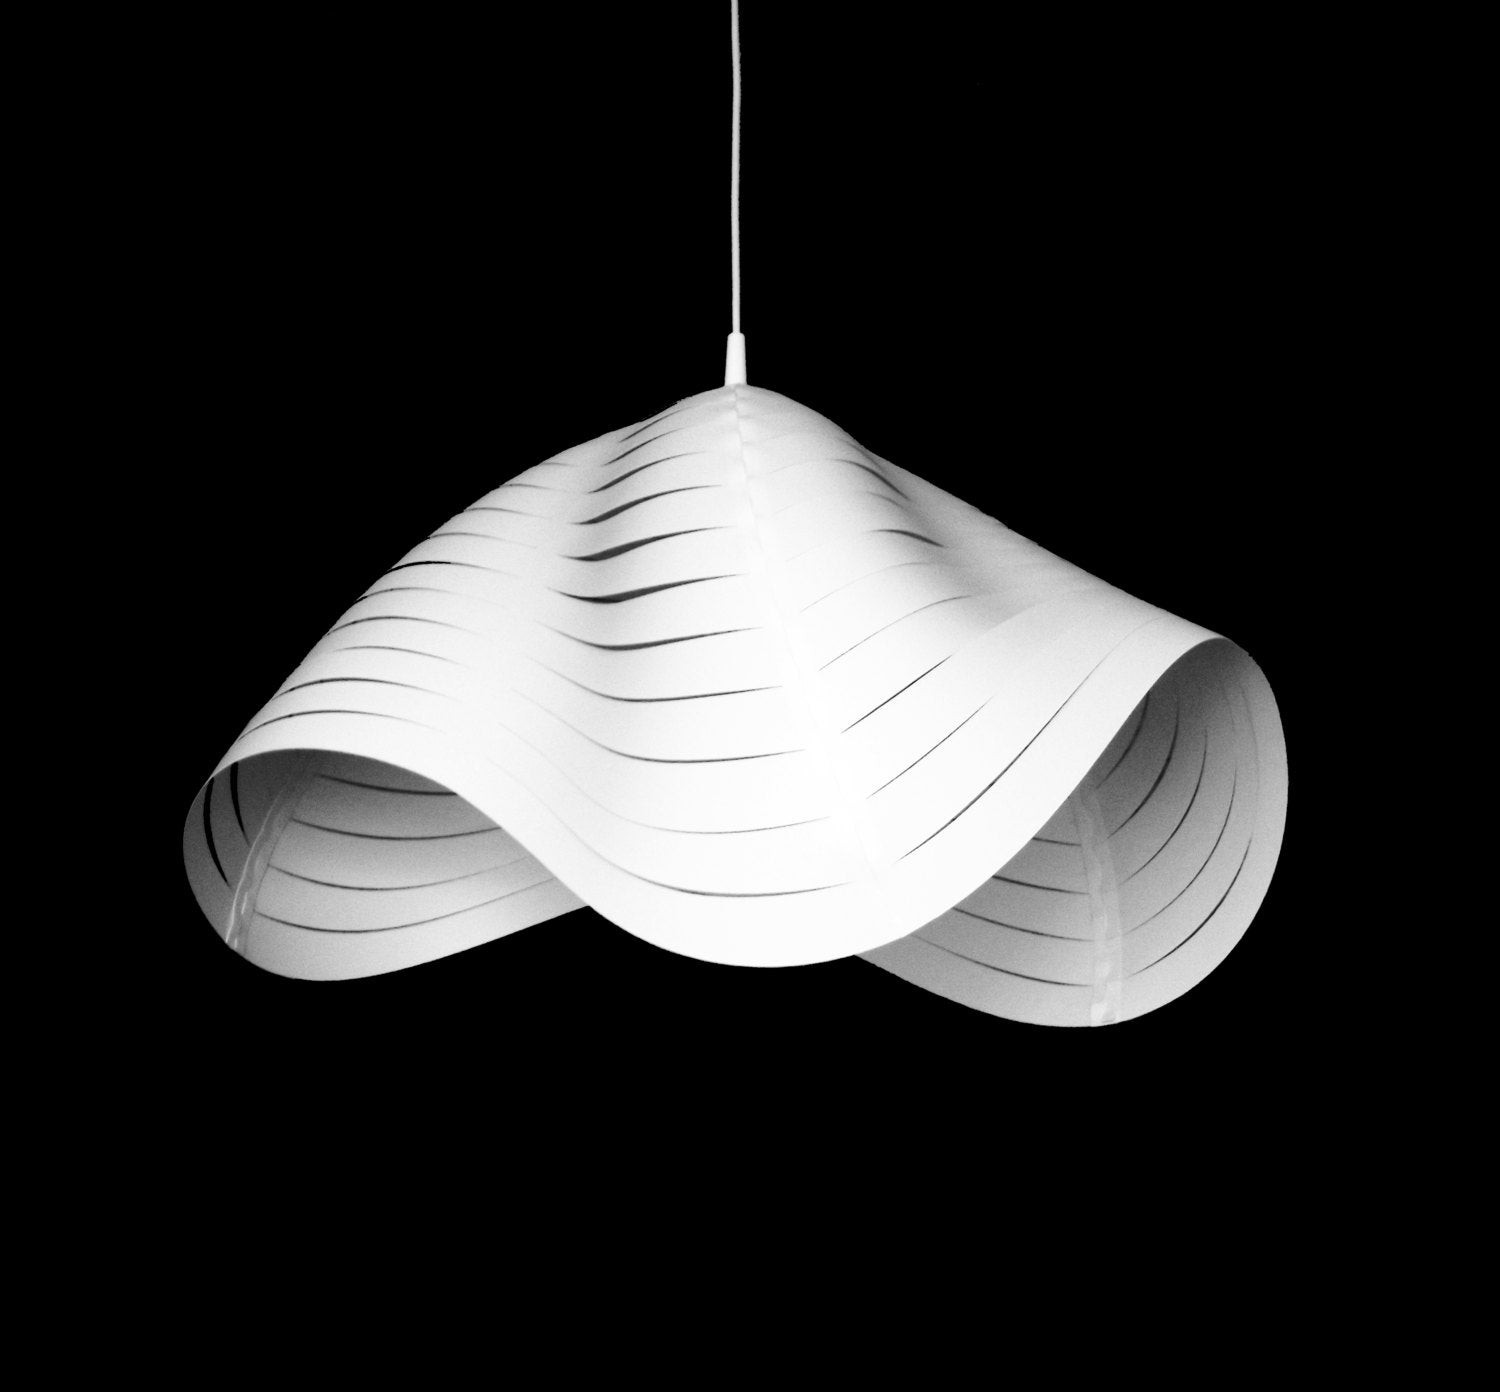 Best ideas about DIY Hanging Lamp . Save or Pin White Hanging Lamp shades DIY Pendant light by smallbigDesign Now.